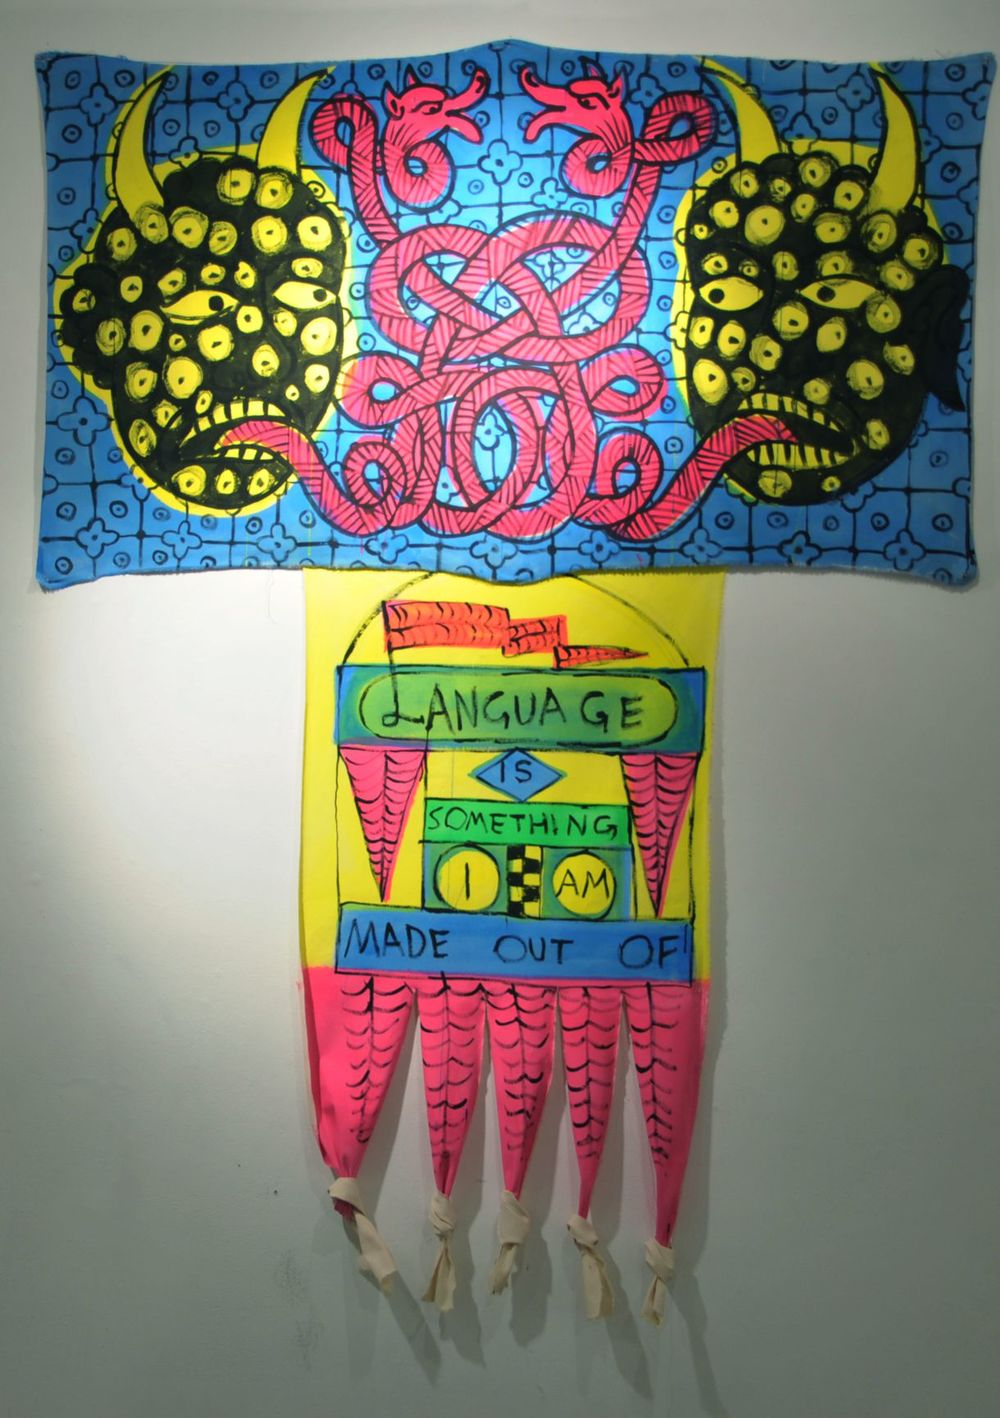 Language is something I am made out of Ink and florescent vinyl paint on raw canvas, 160x200 cm